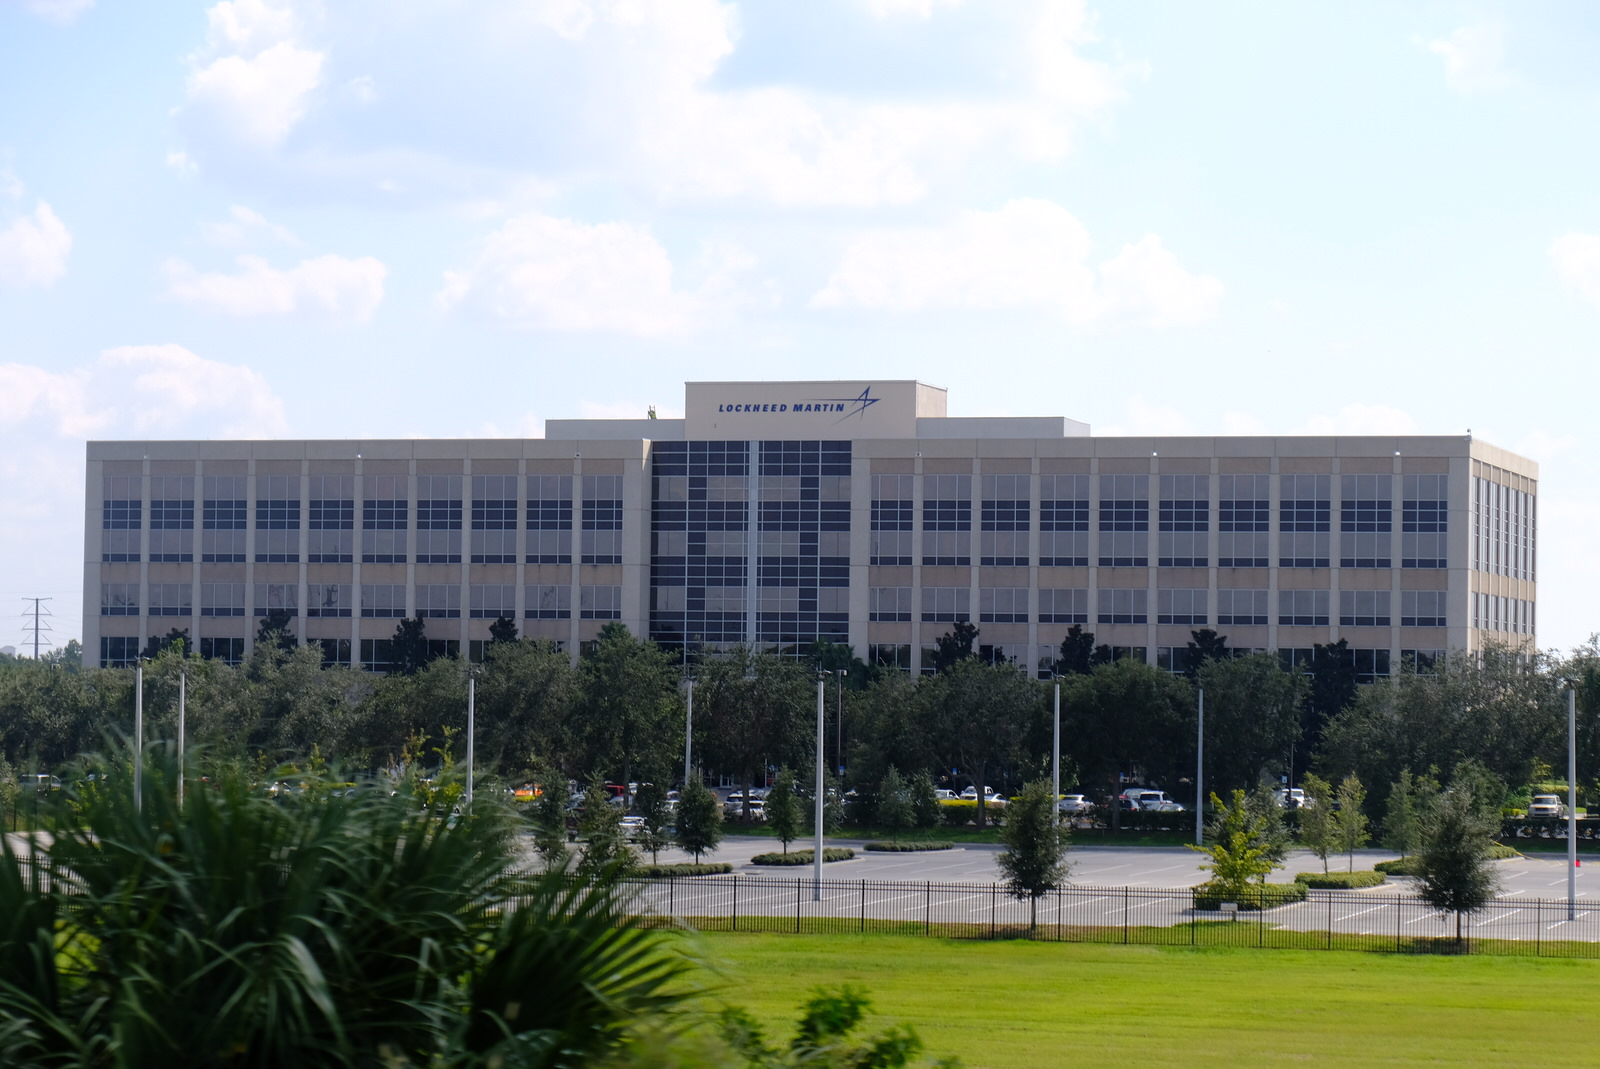 Lockheed Martin facility in Orlando, Florida.